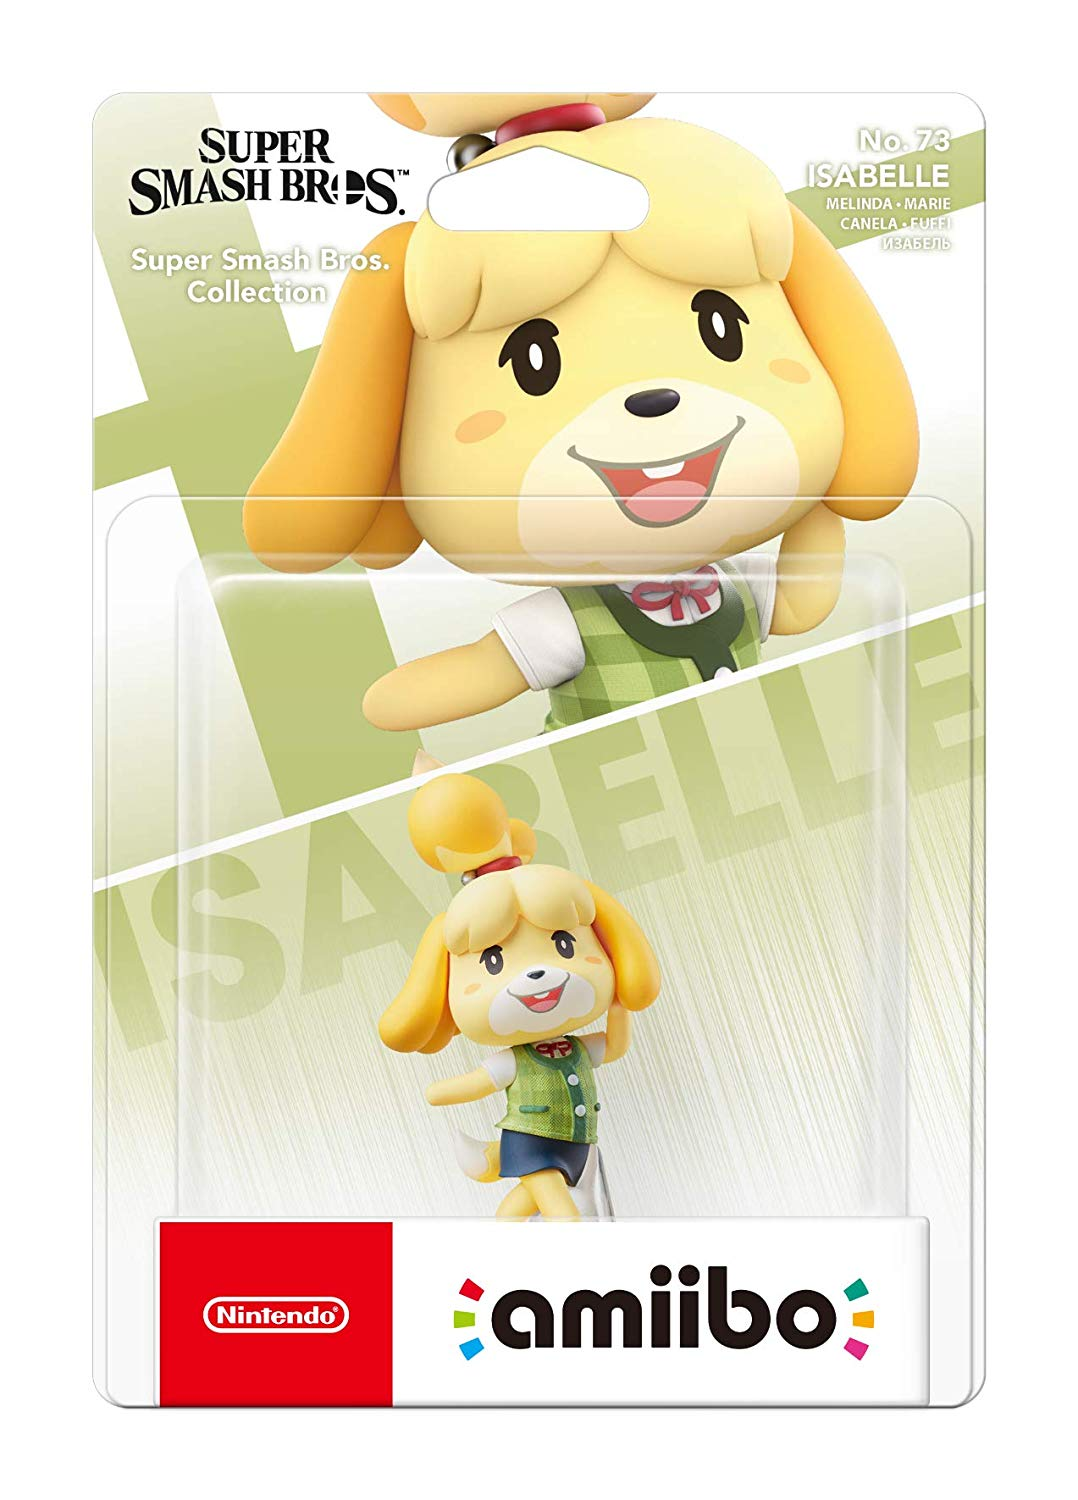 Super Smash Bros. Collection - Isabelle - Amiibo No 73